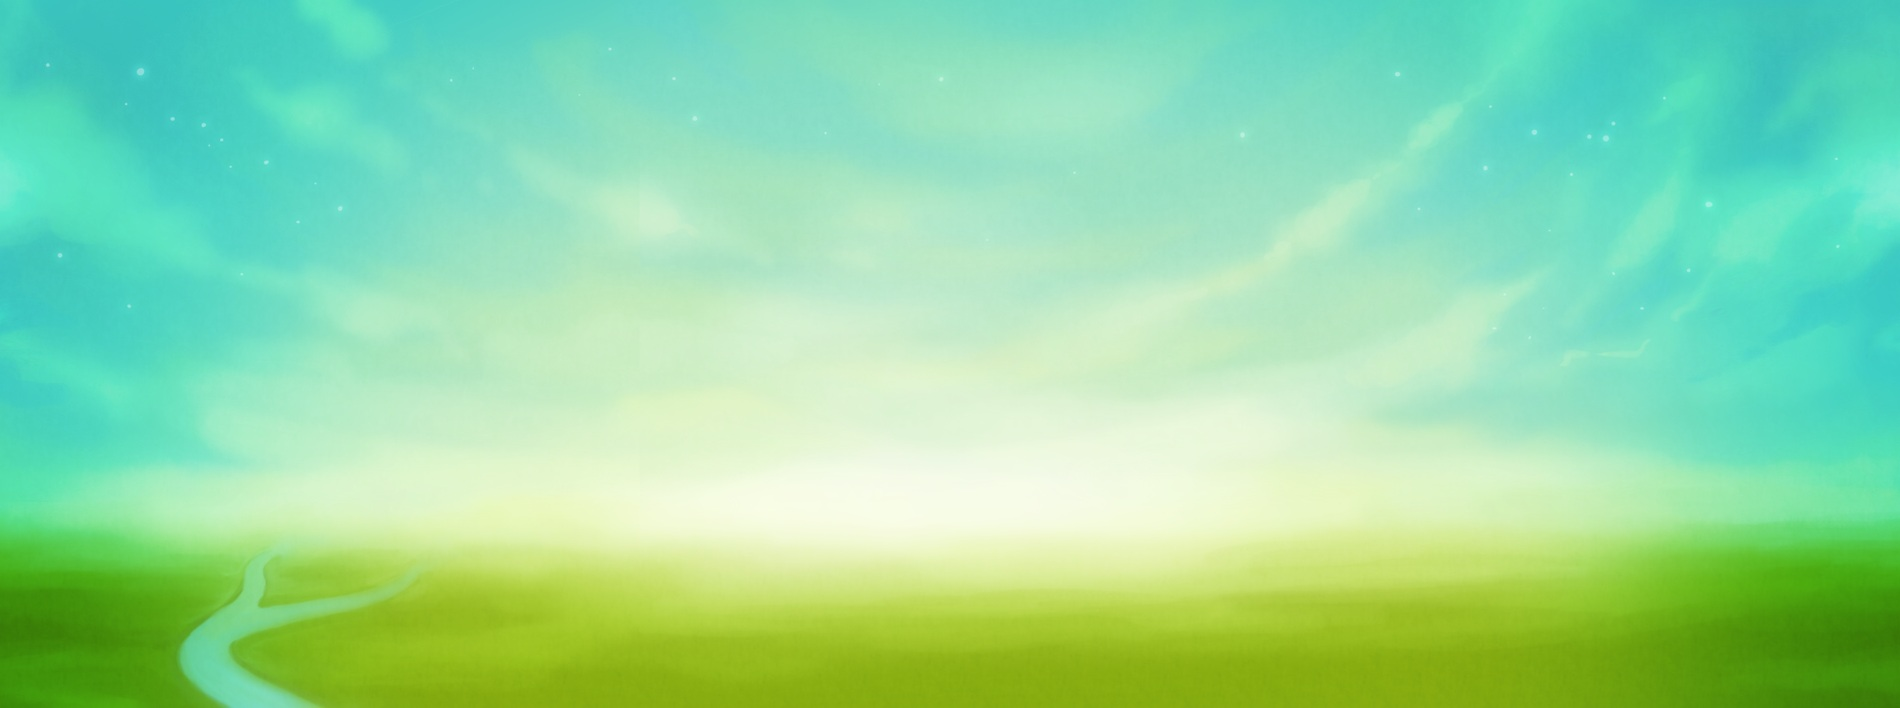 Plain background by wangqr on deviantart for Plain blue wallpaper for walls